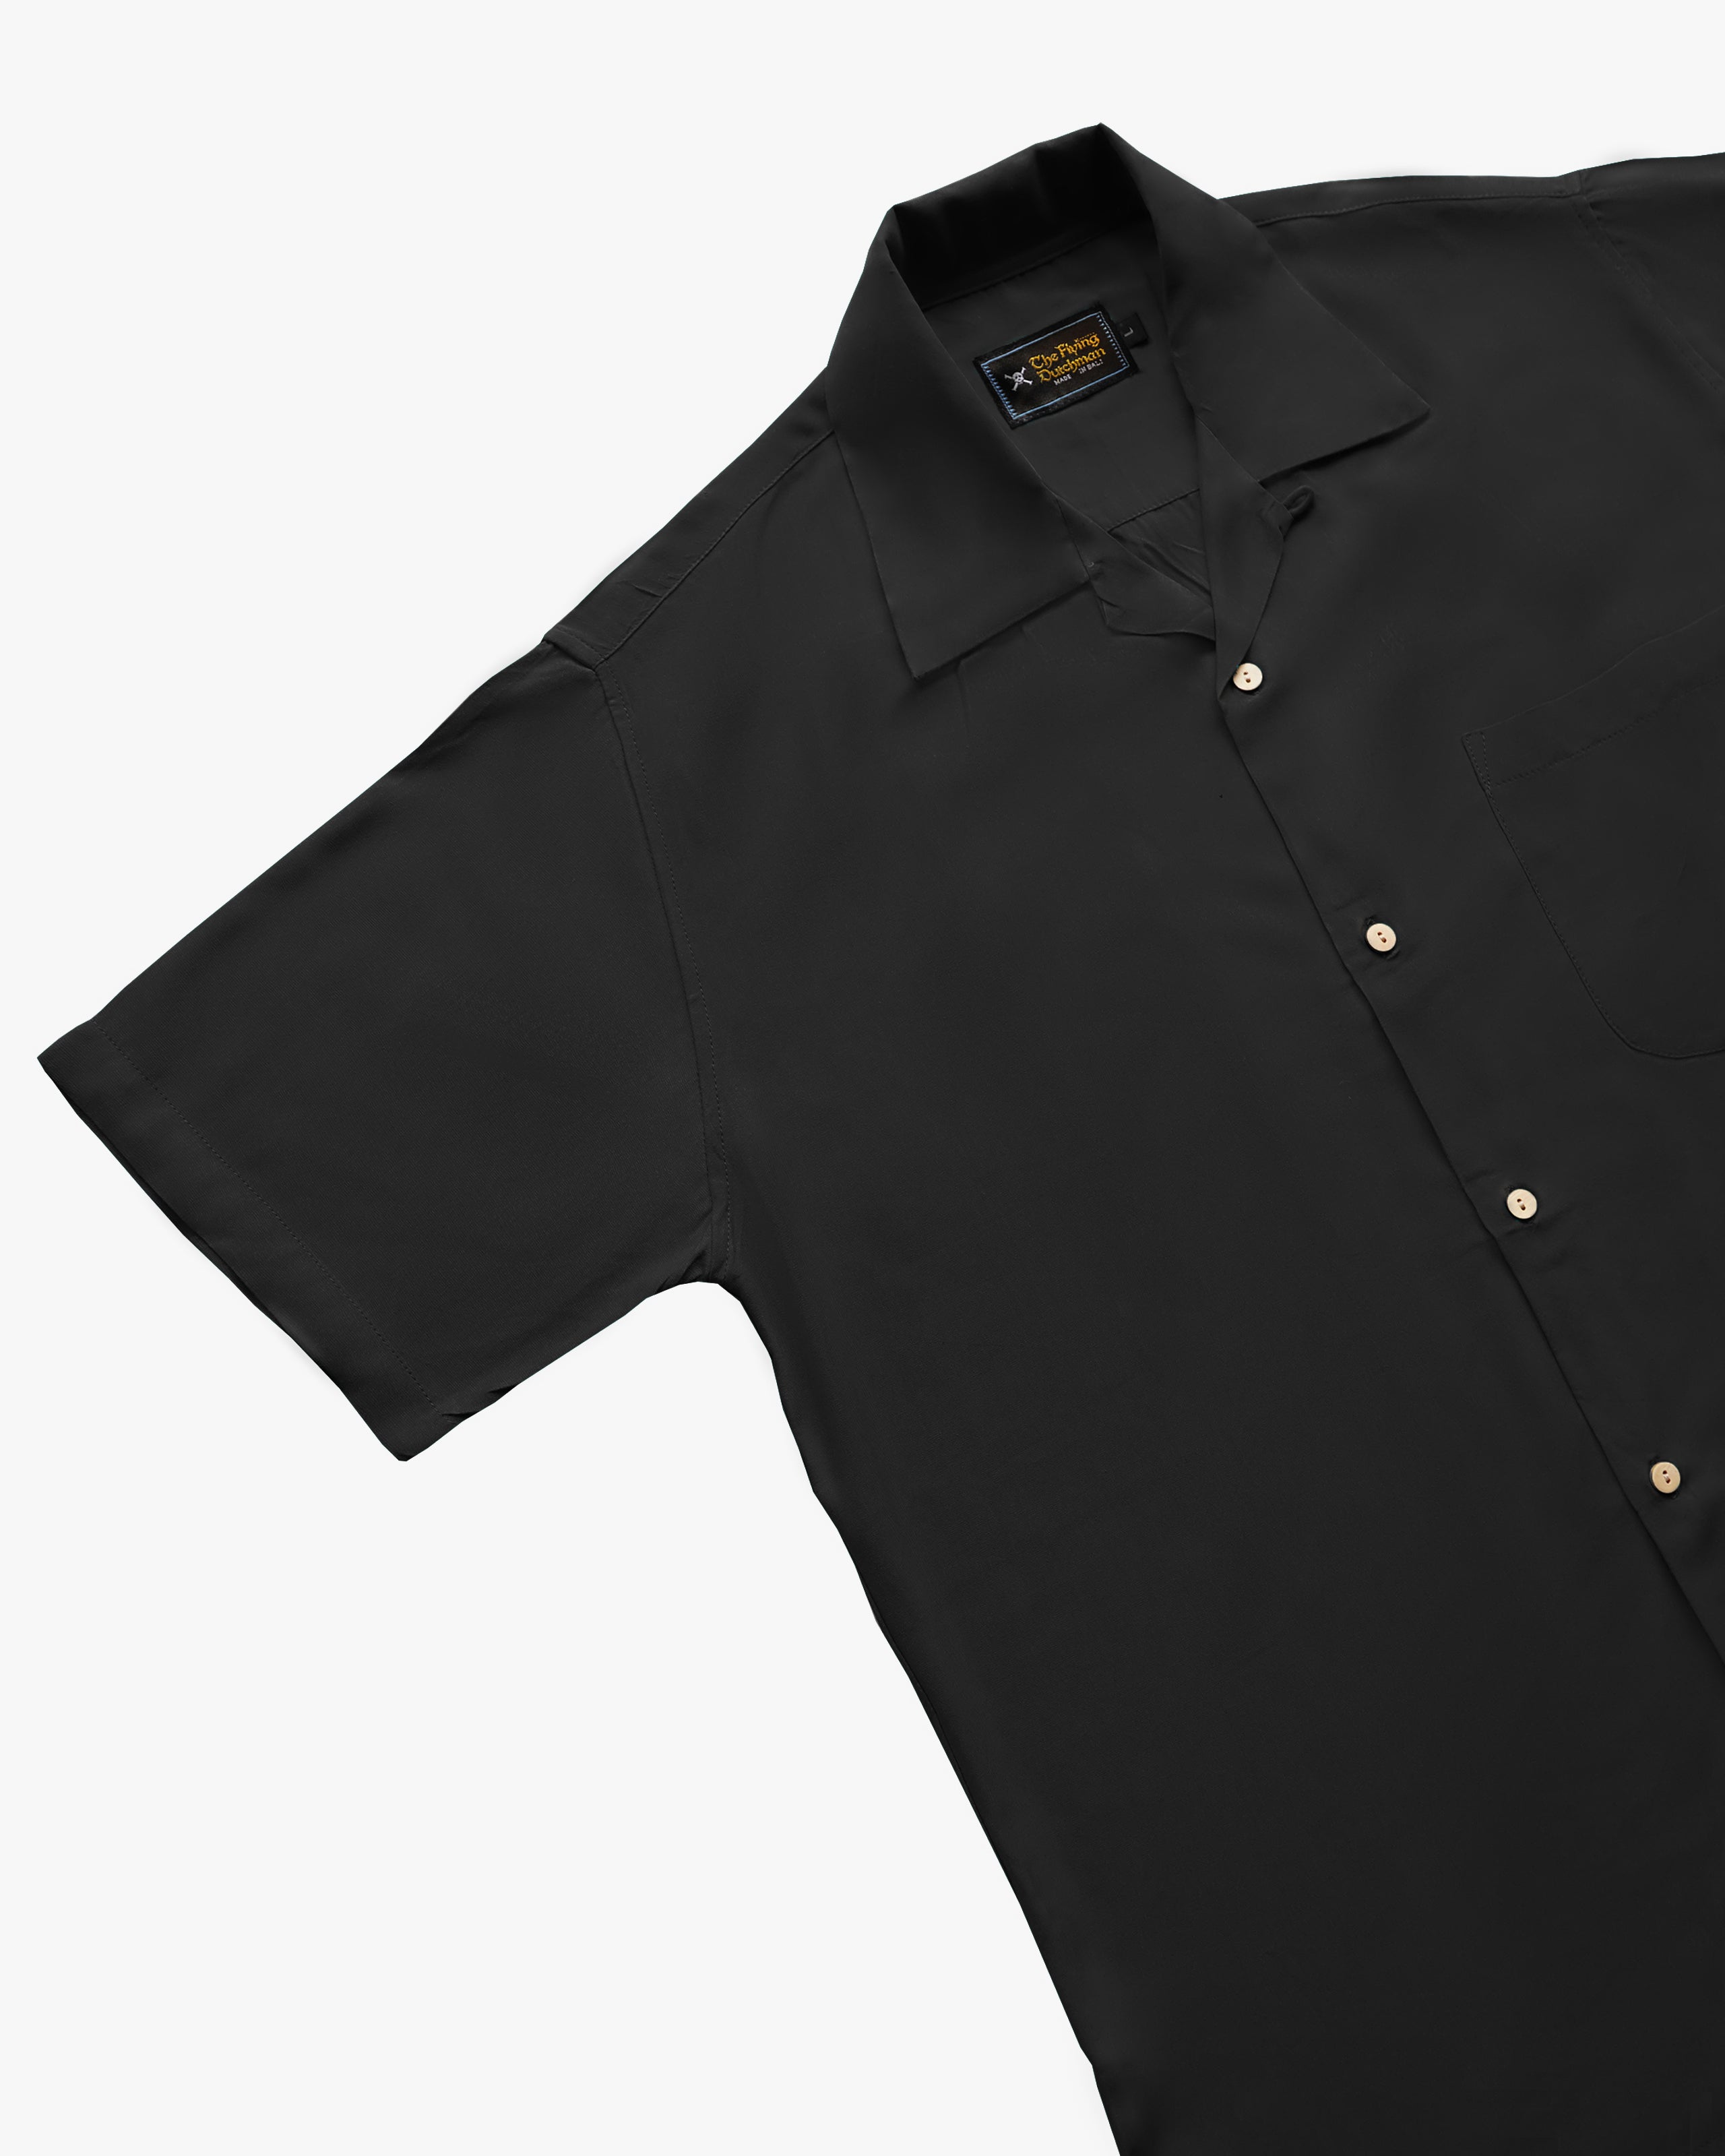 Plain Black short sleeve shirt